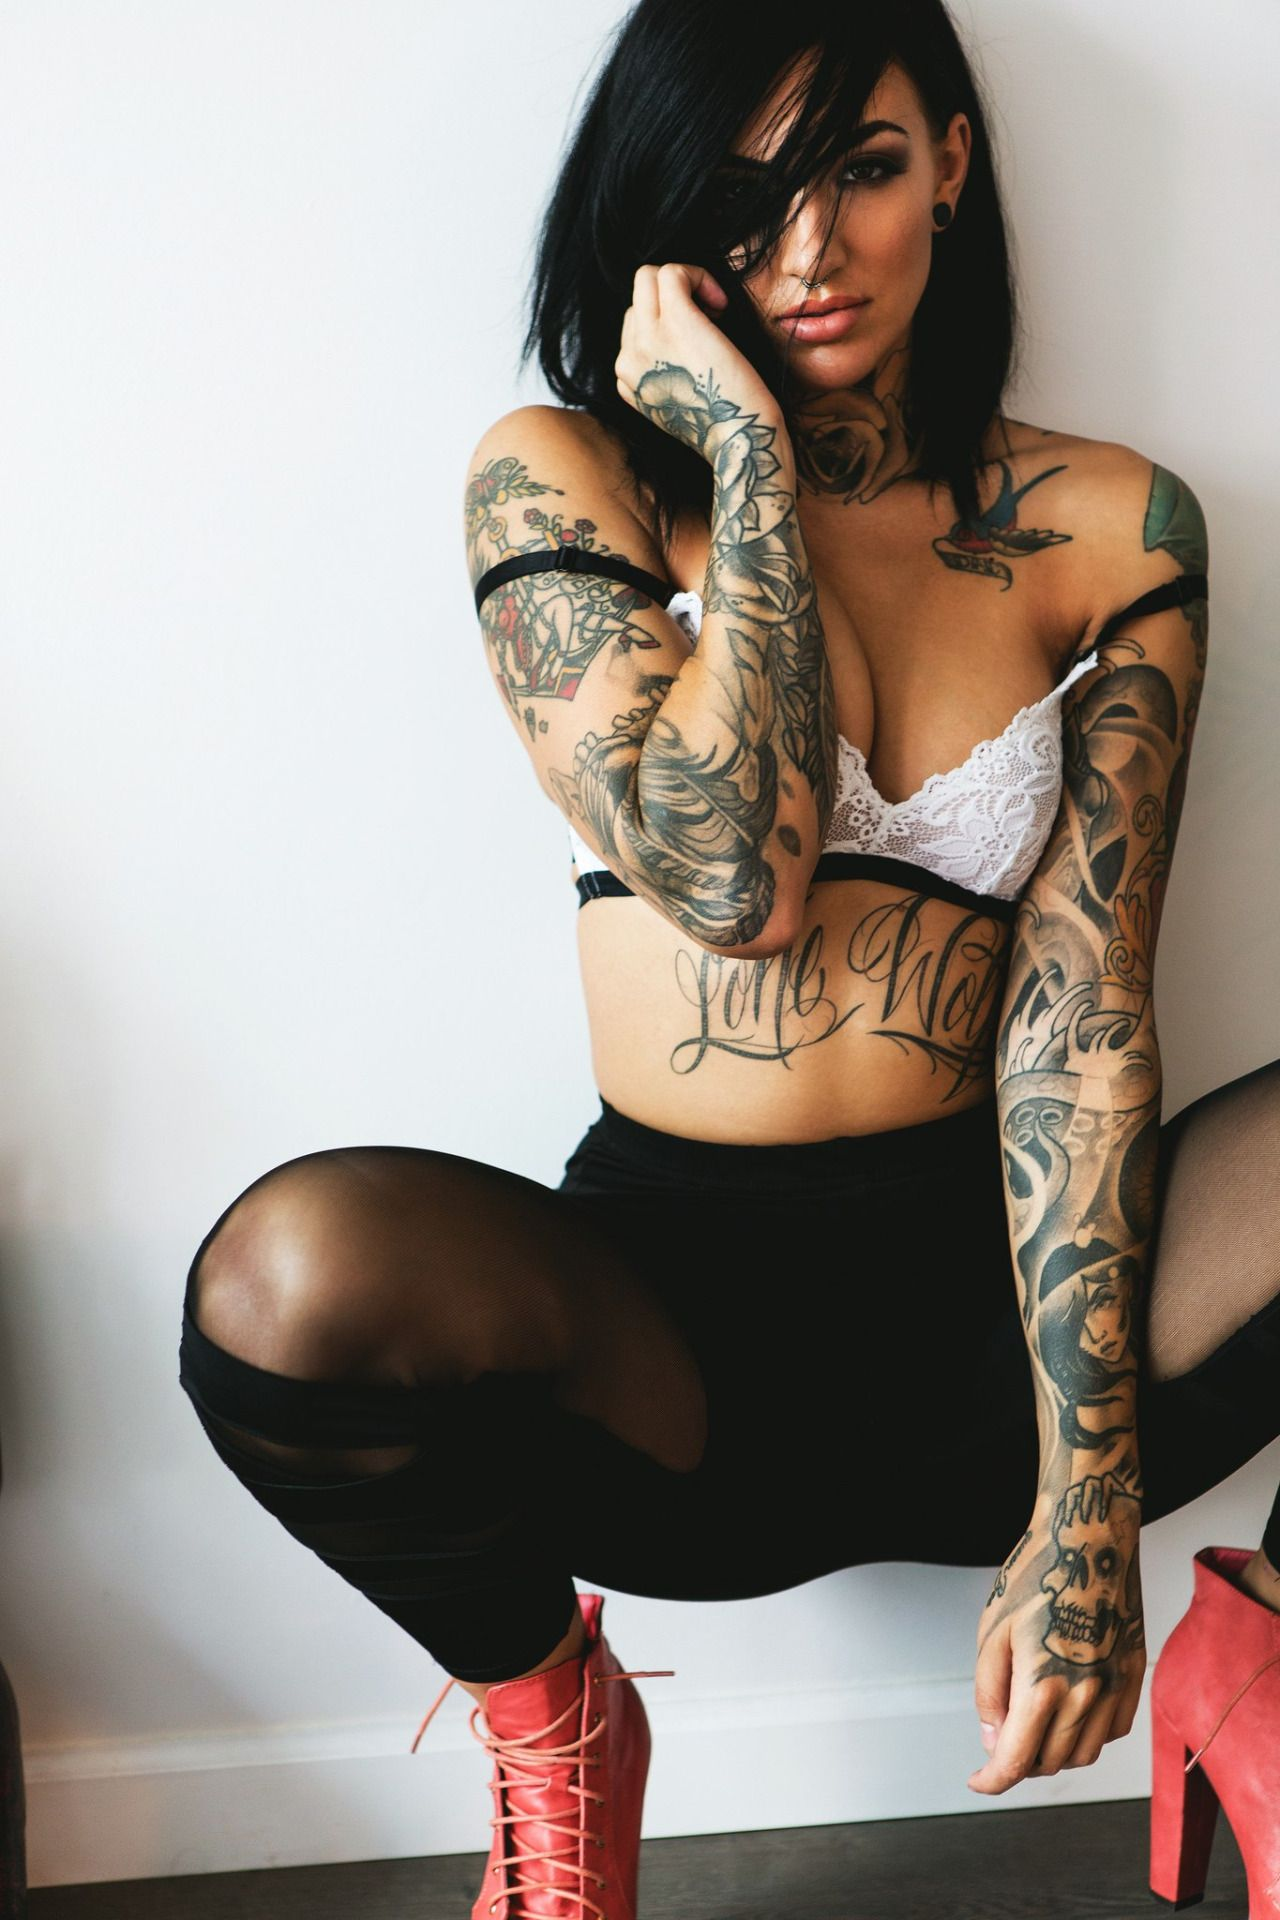 Nackte tattoogirls butts